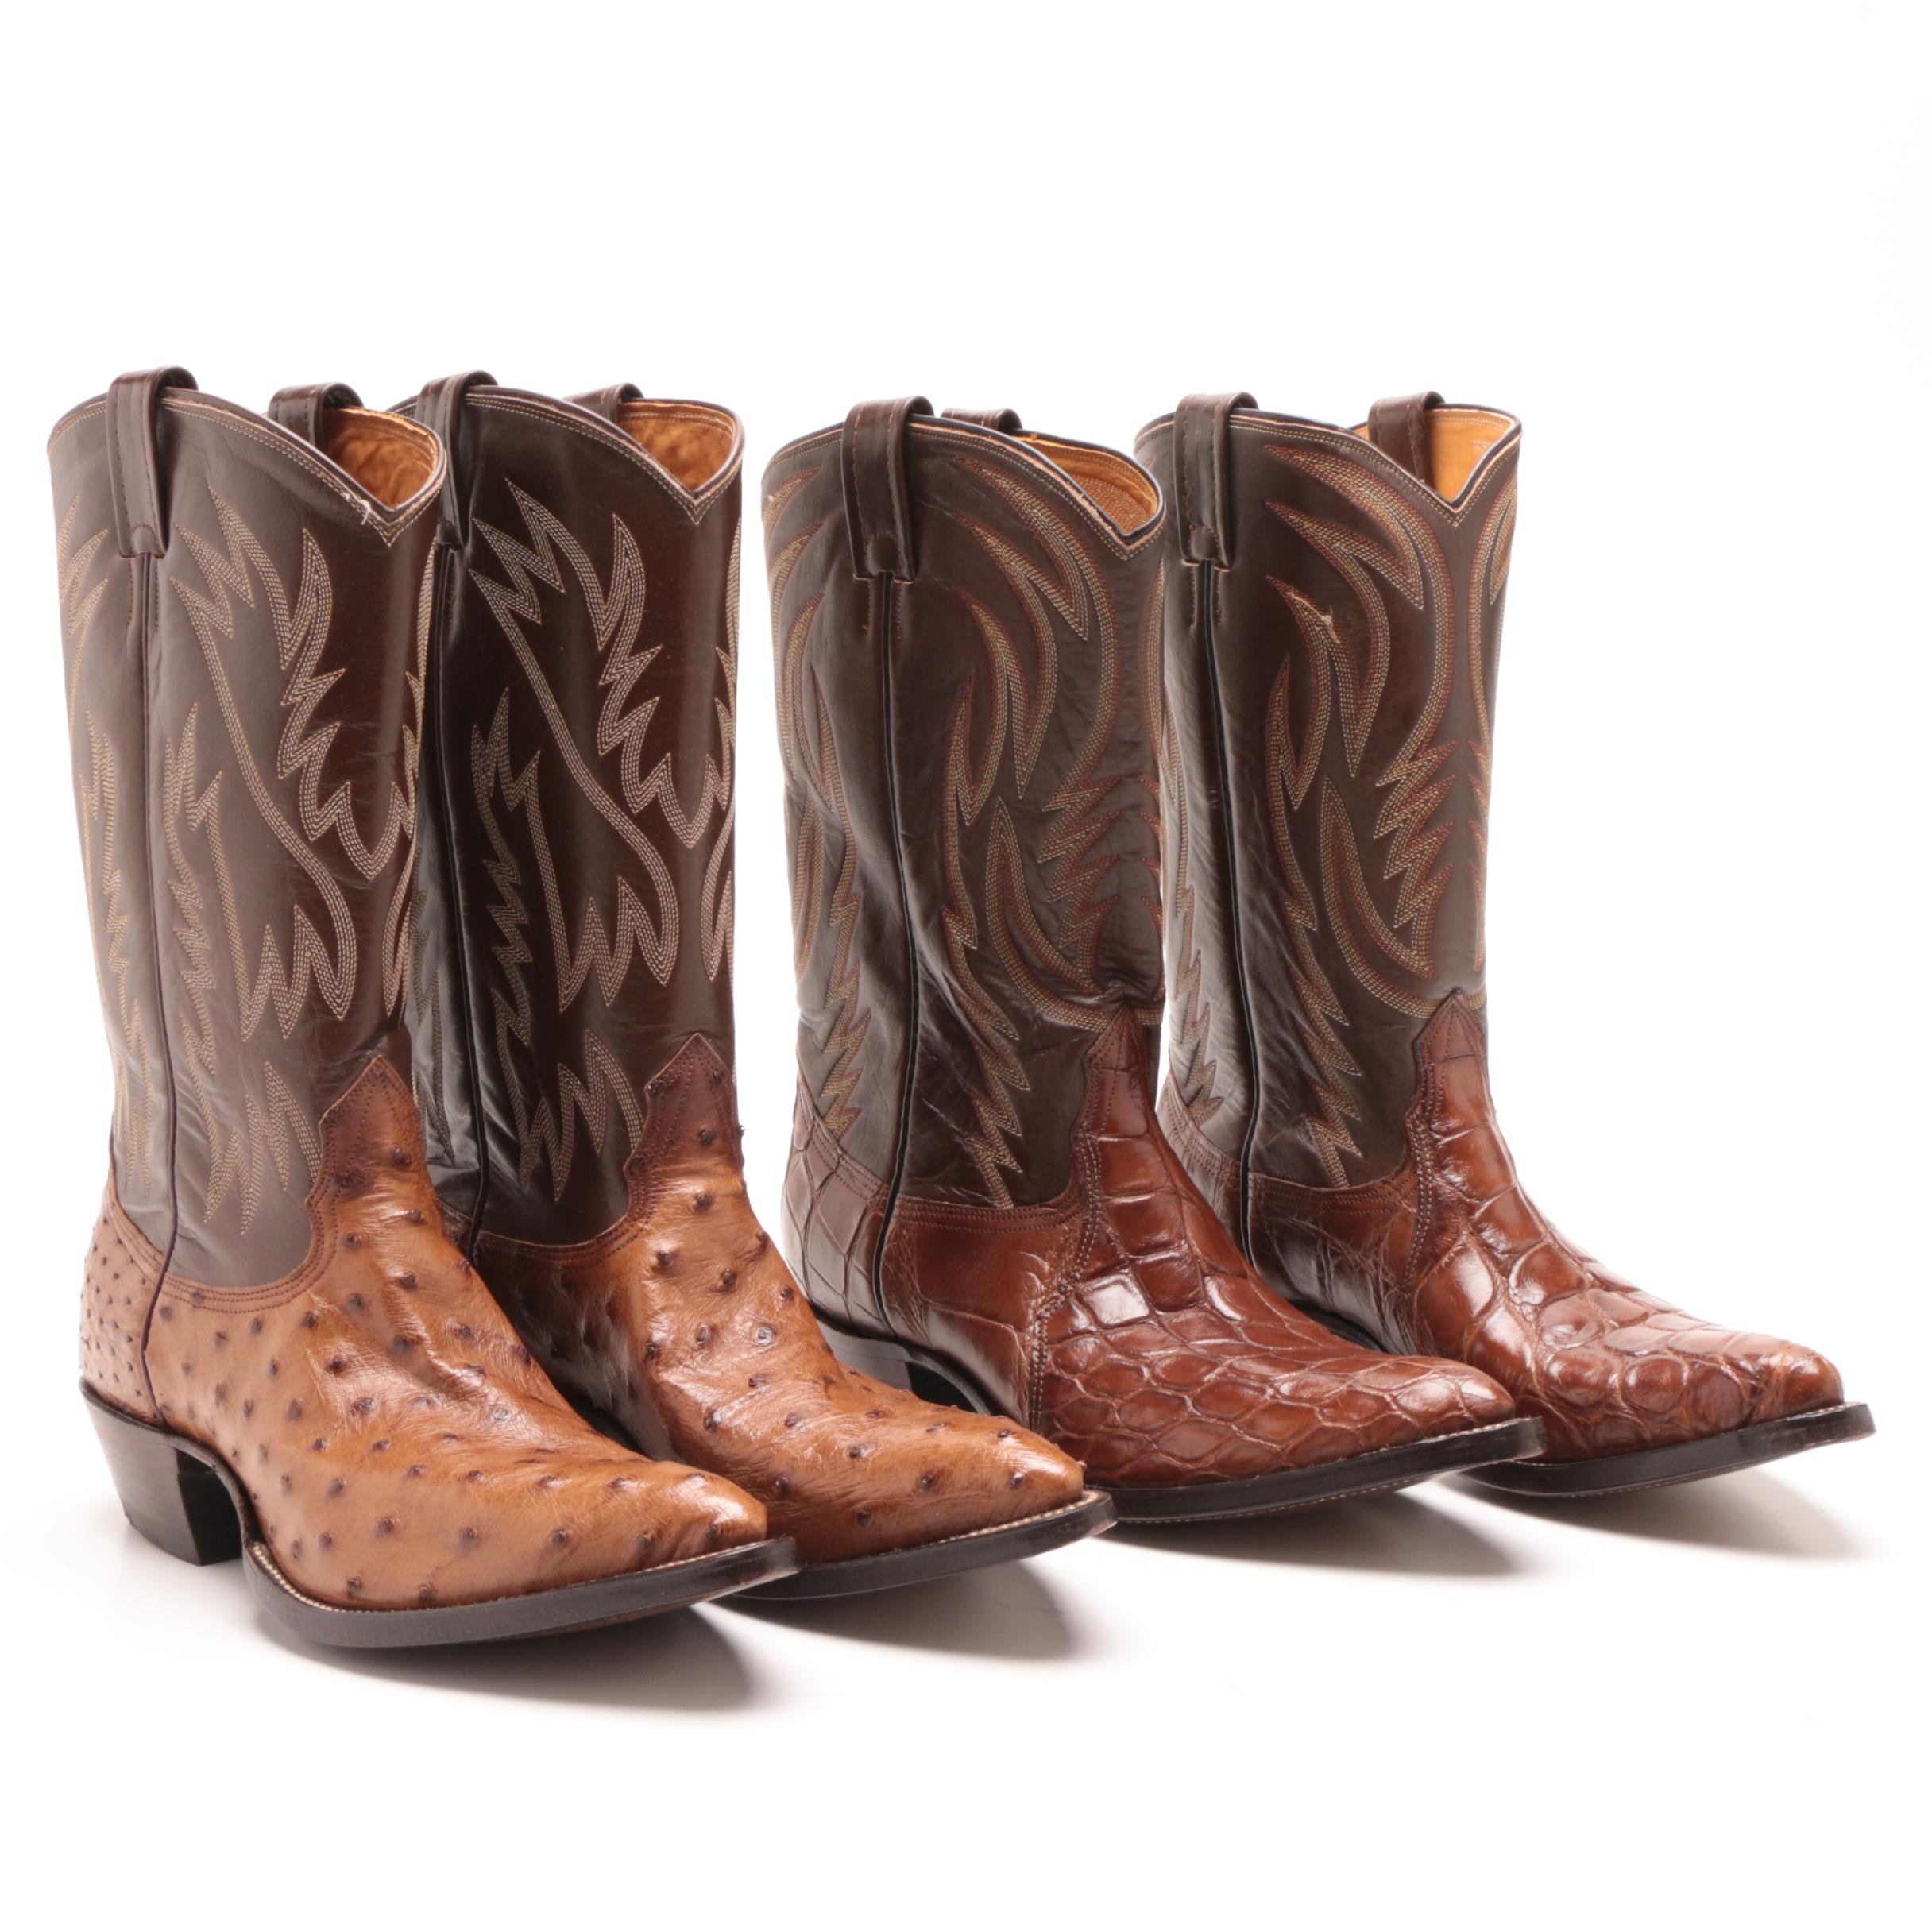 Men's Nocona Alligator and Ostrich Skin and Leather Cowboy Boots